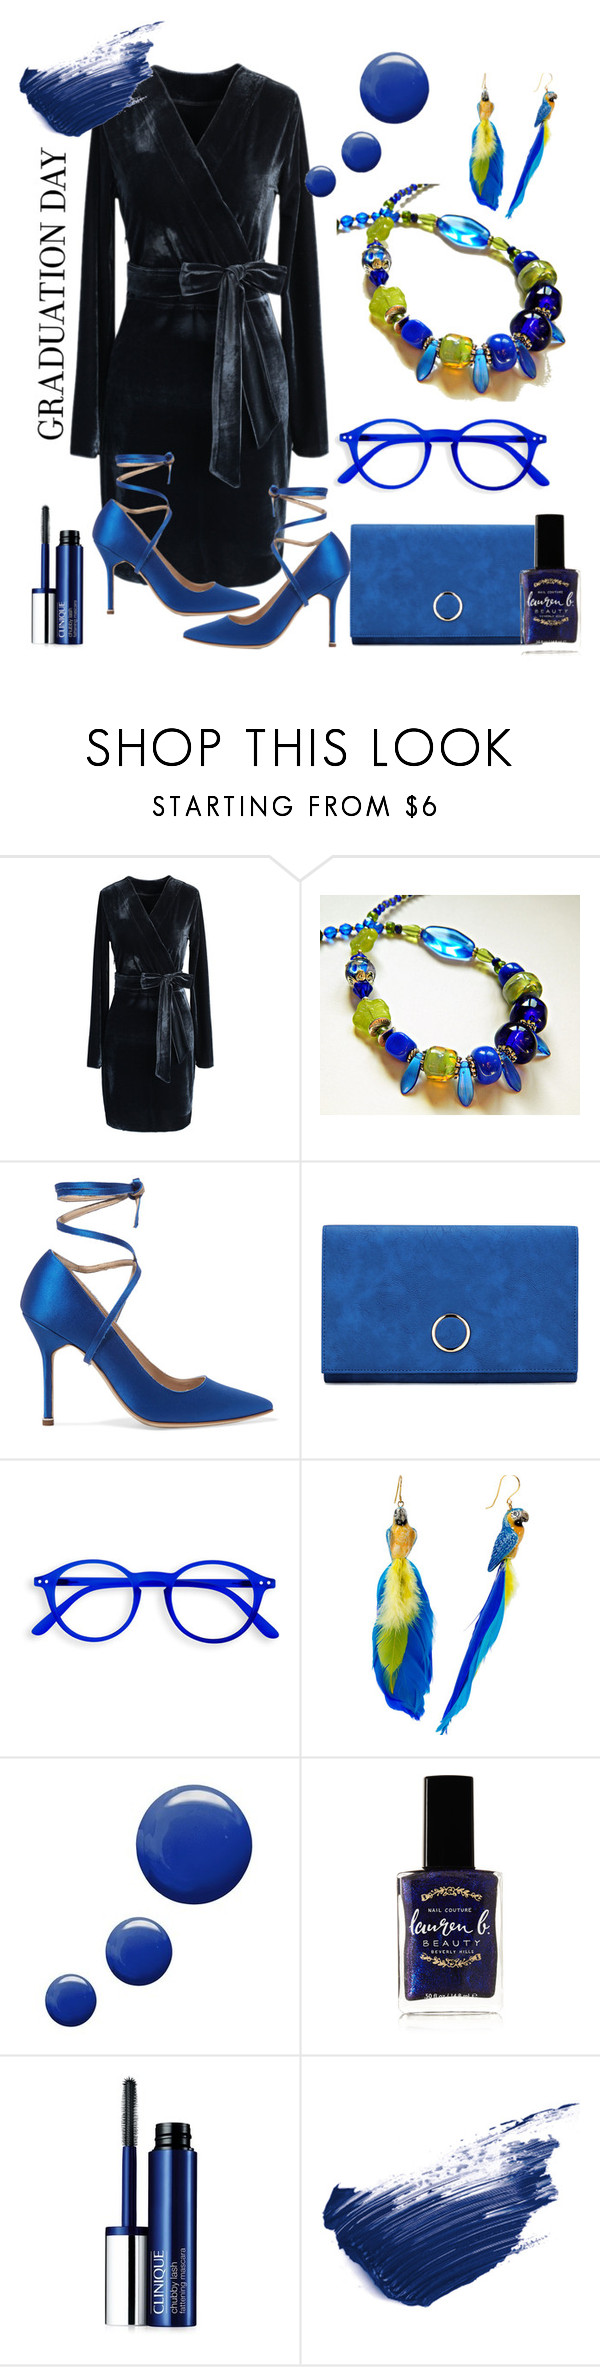 """Blue"" by mariannemerceria ❤ liked on Polyvore featuring Chicwish, Vetements, Nach Bijoux, Topshop, Lauren B. Beauty, Clinique, By Terry, Graduation and MarianneMerceria"